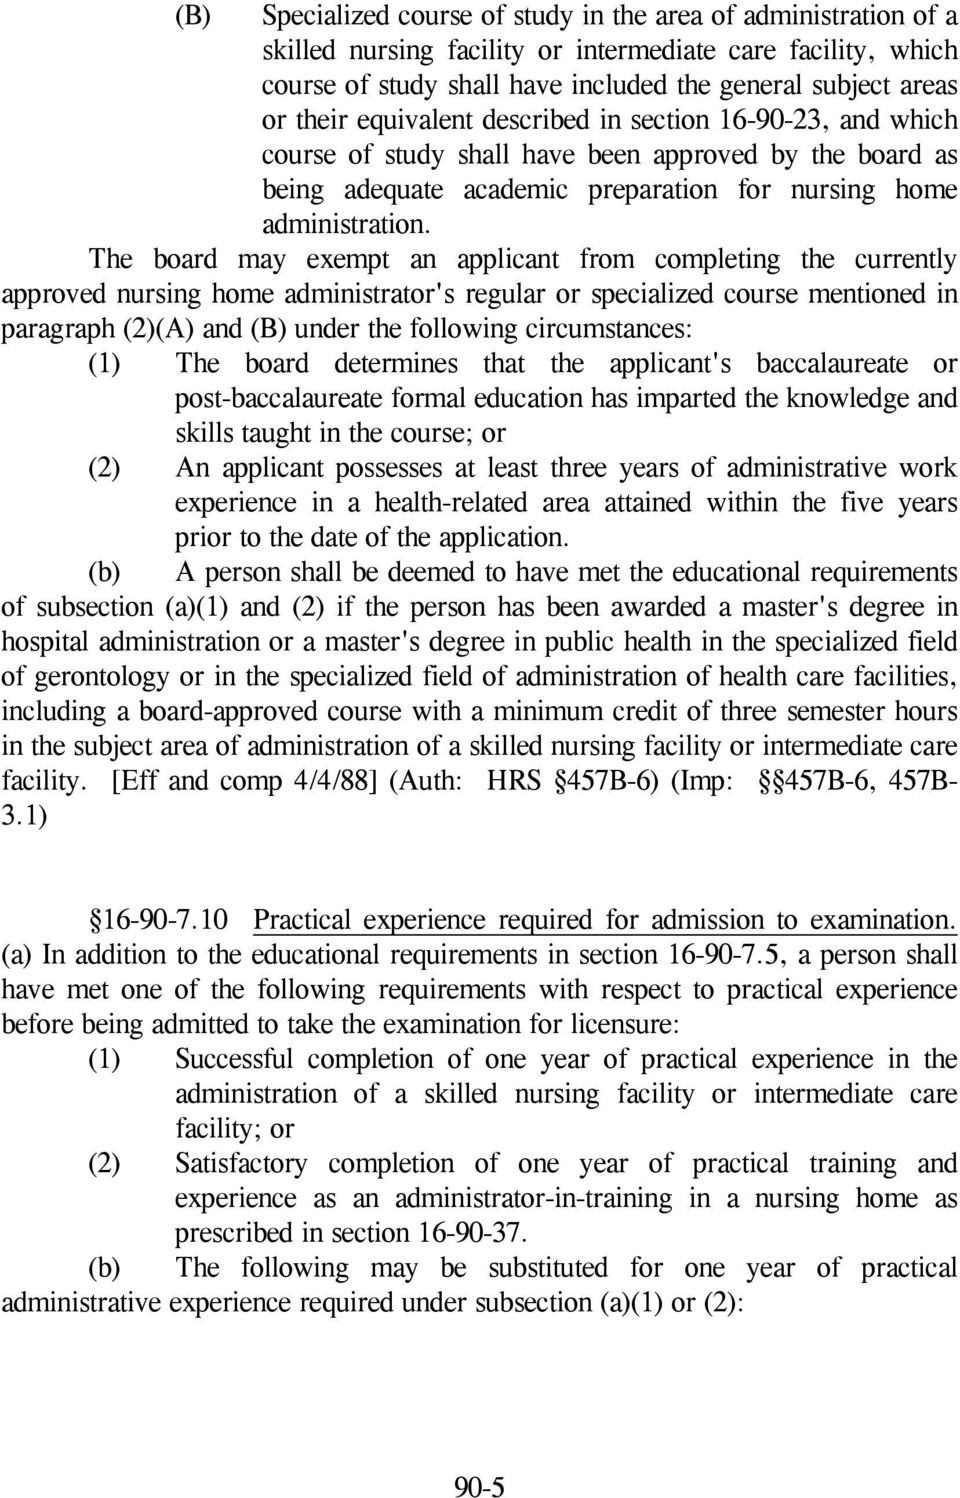 The board may exempt an applicant from completing the currently approved nursing home administrator's regular or specialized course mentioned in paragraph (2)(A) and (B) under the following